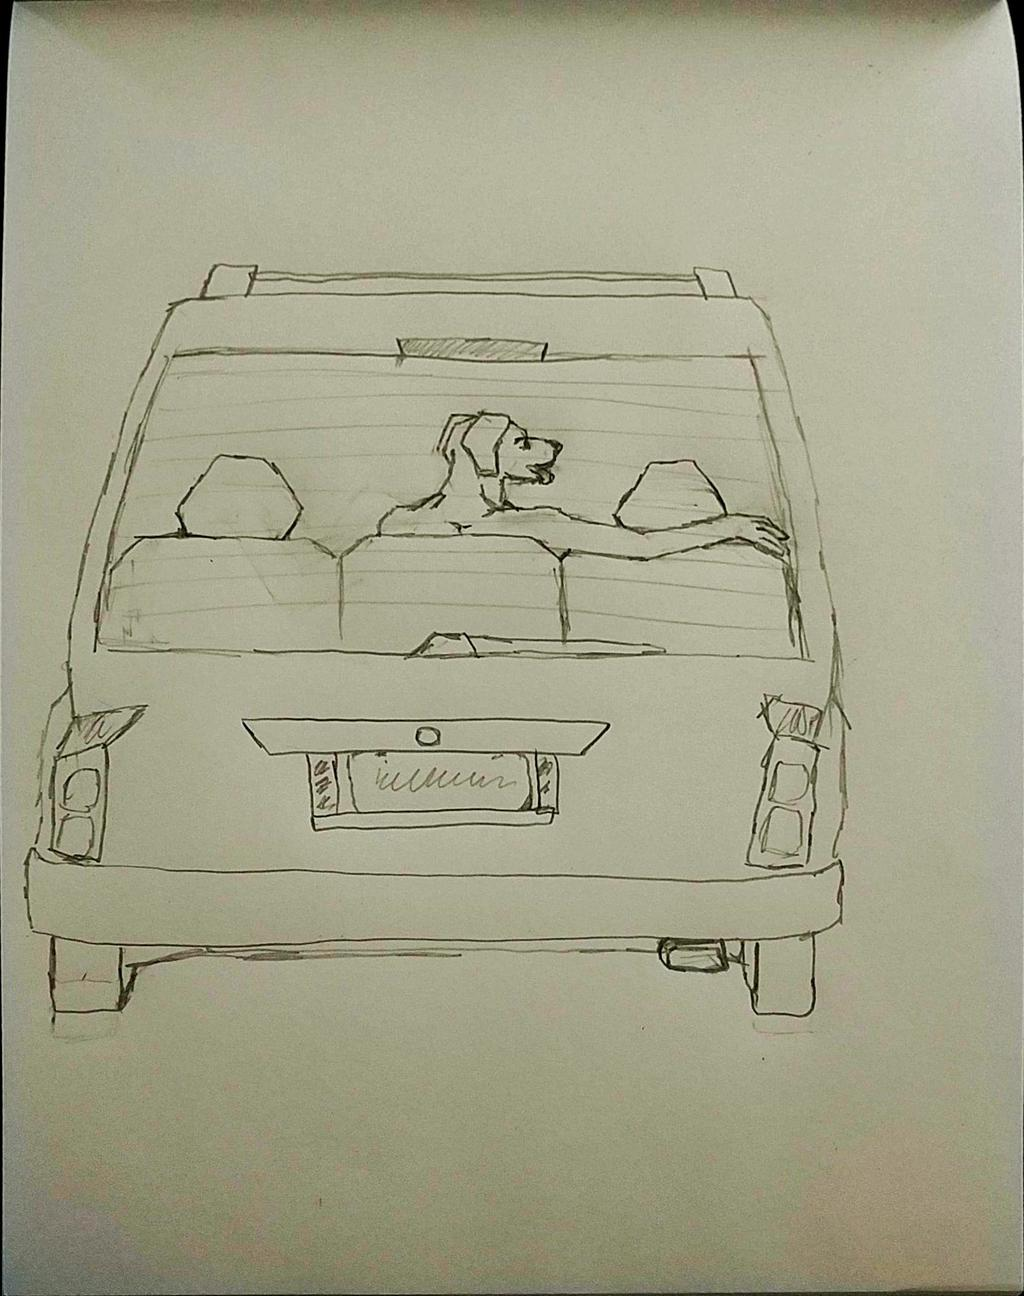 Dog in back of SUV